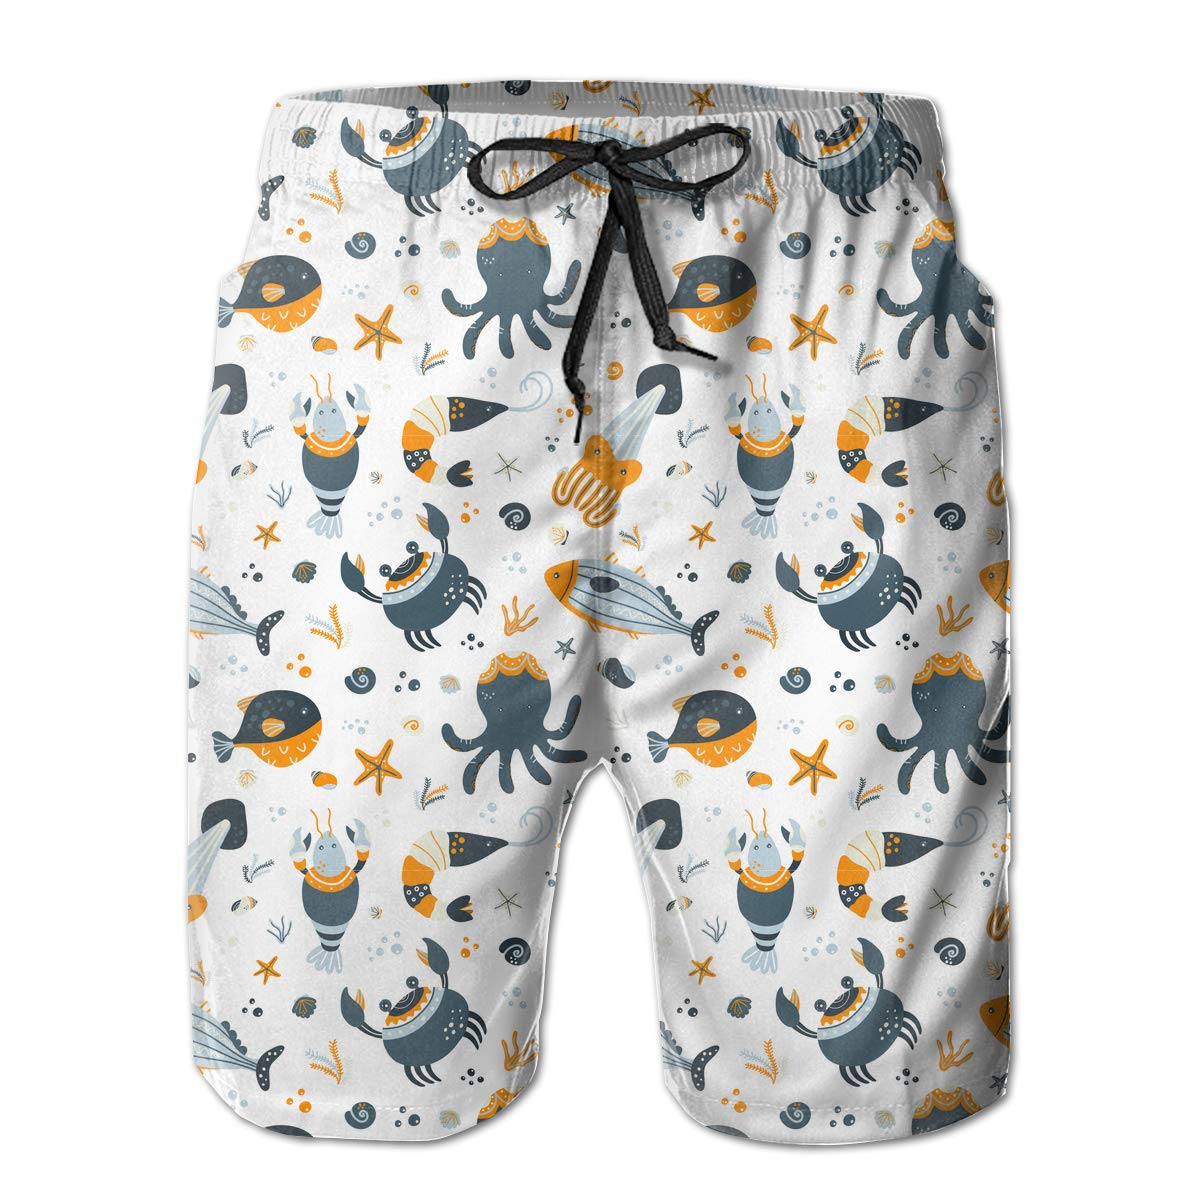 Cute Sea Animals Mens Beach Shorts Casual Surfing Trunks with 3 Pockets